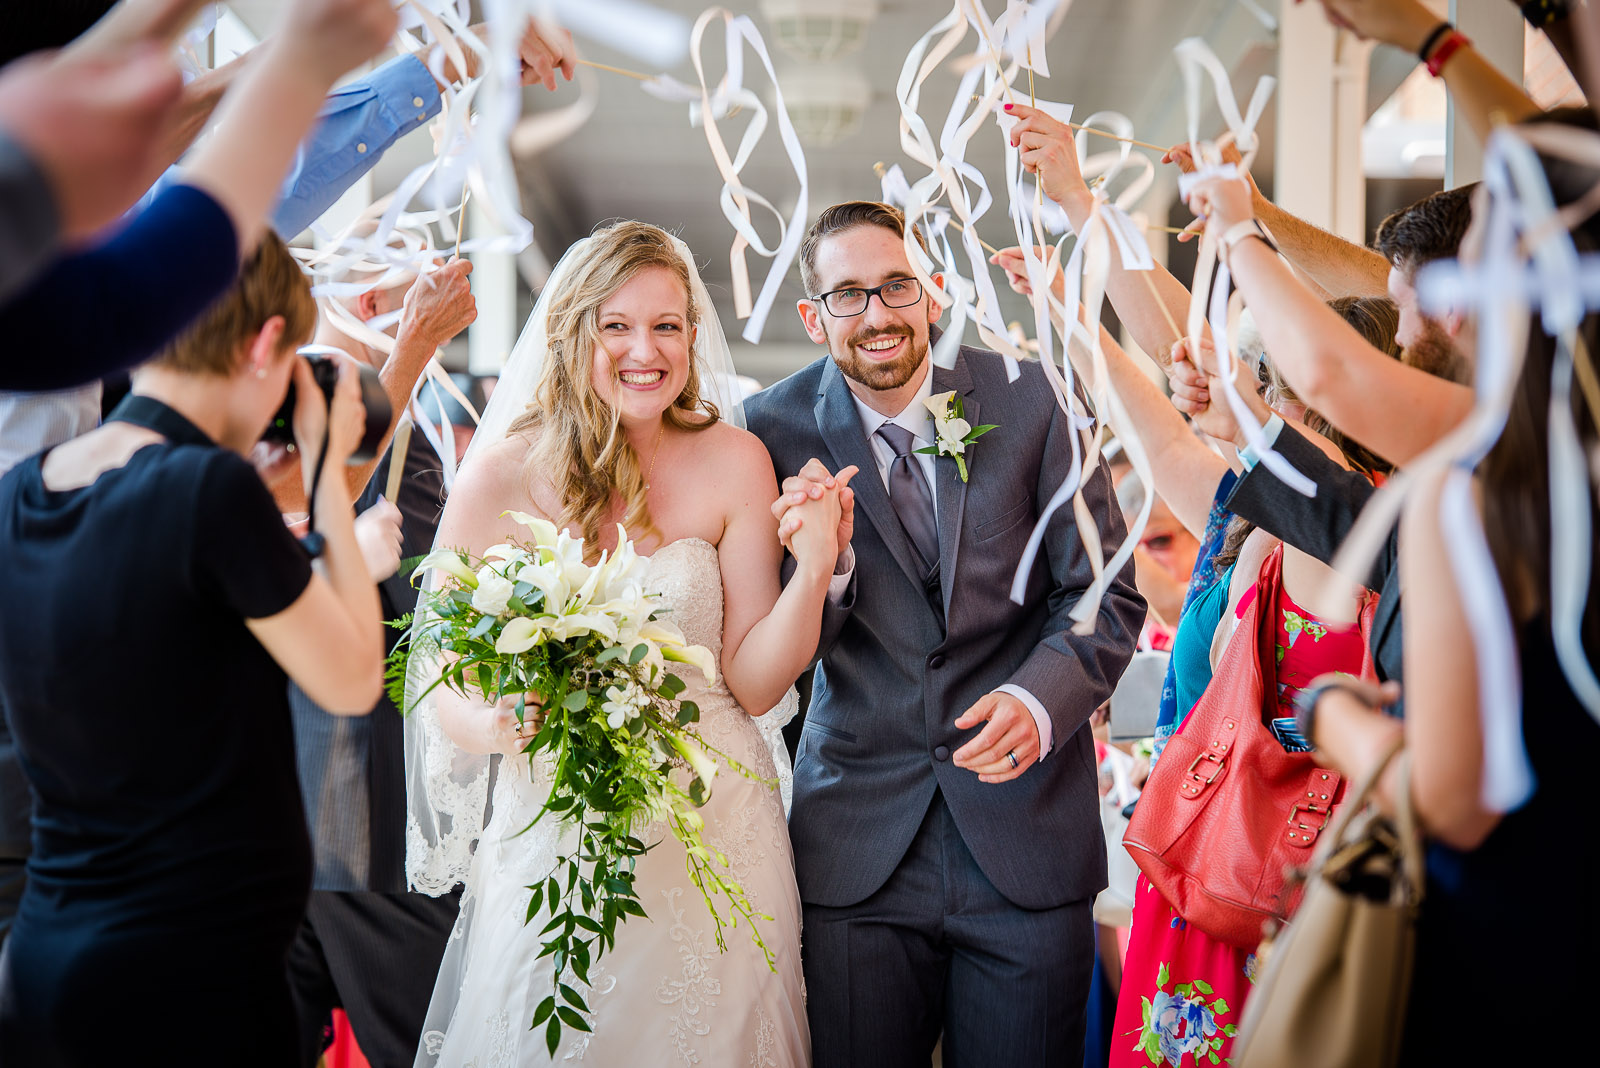 Eric_and_Christy_Photography_Blog_2018_Wed_moments-7